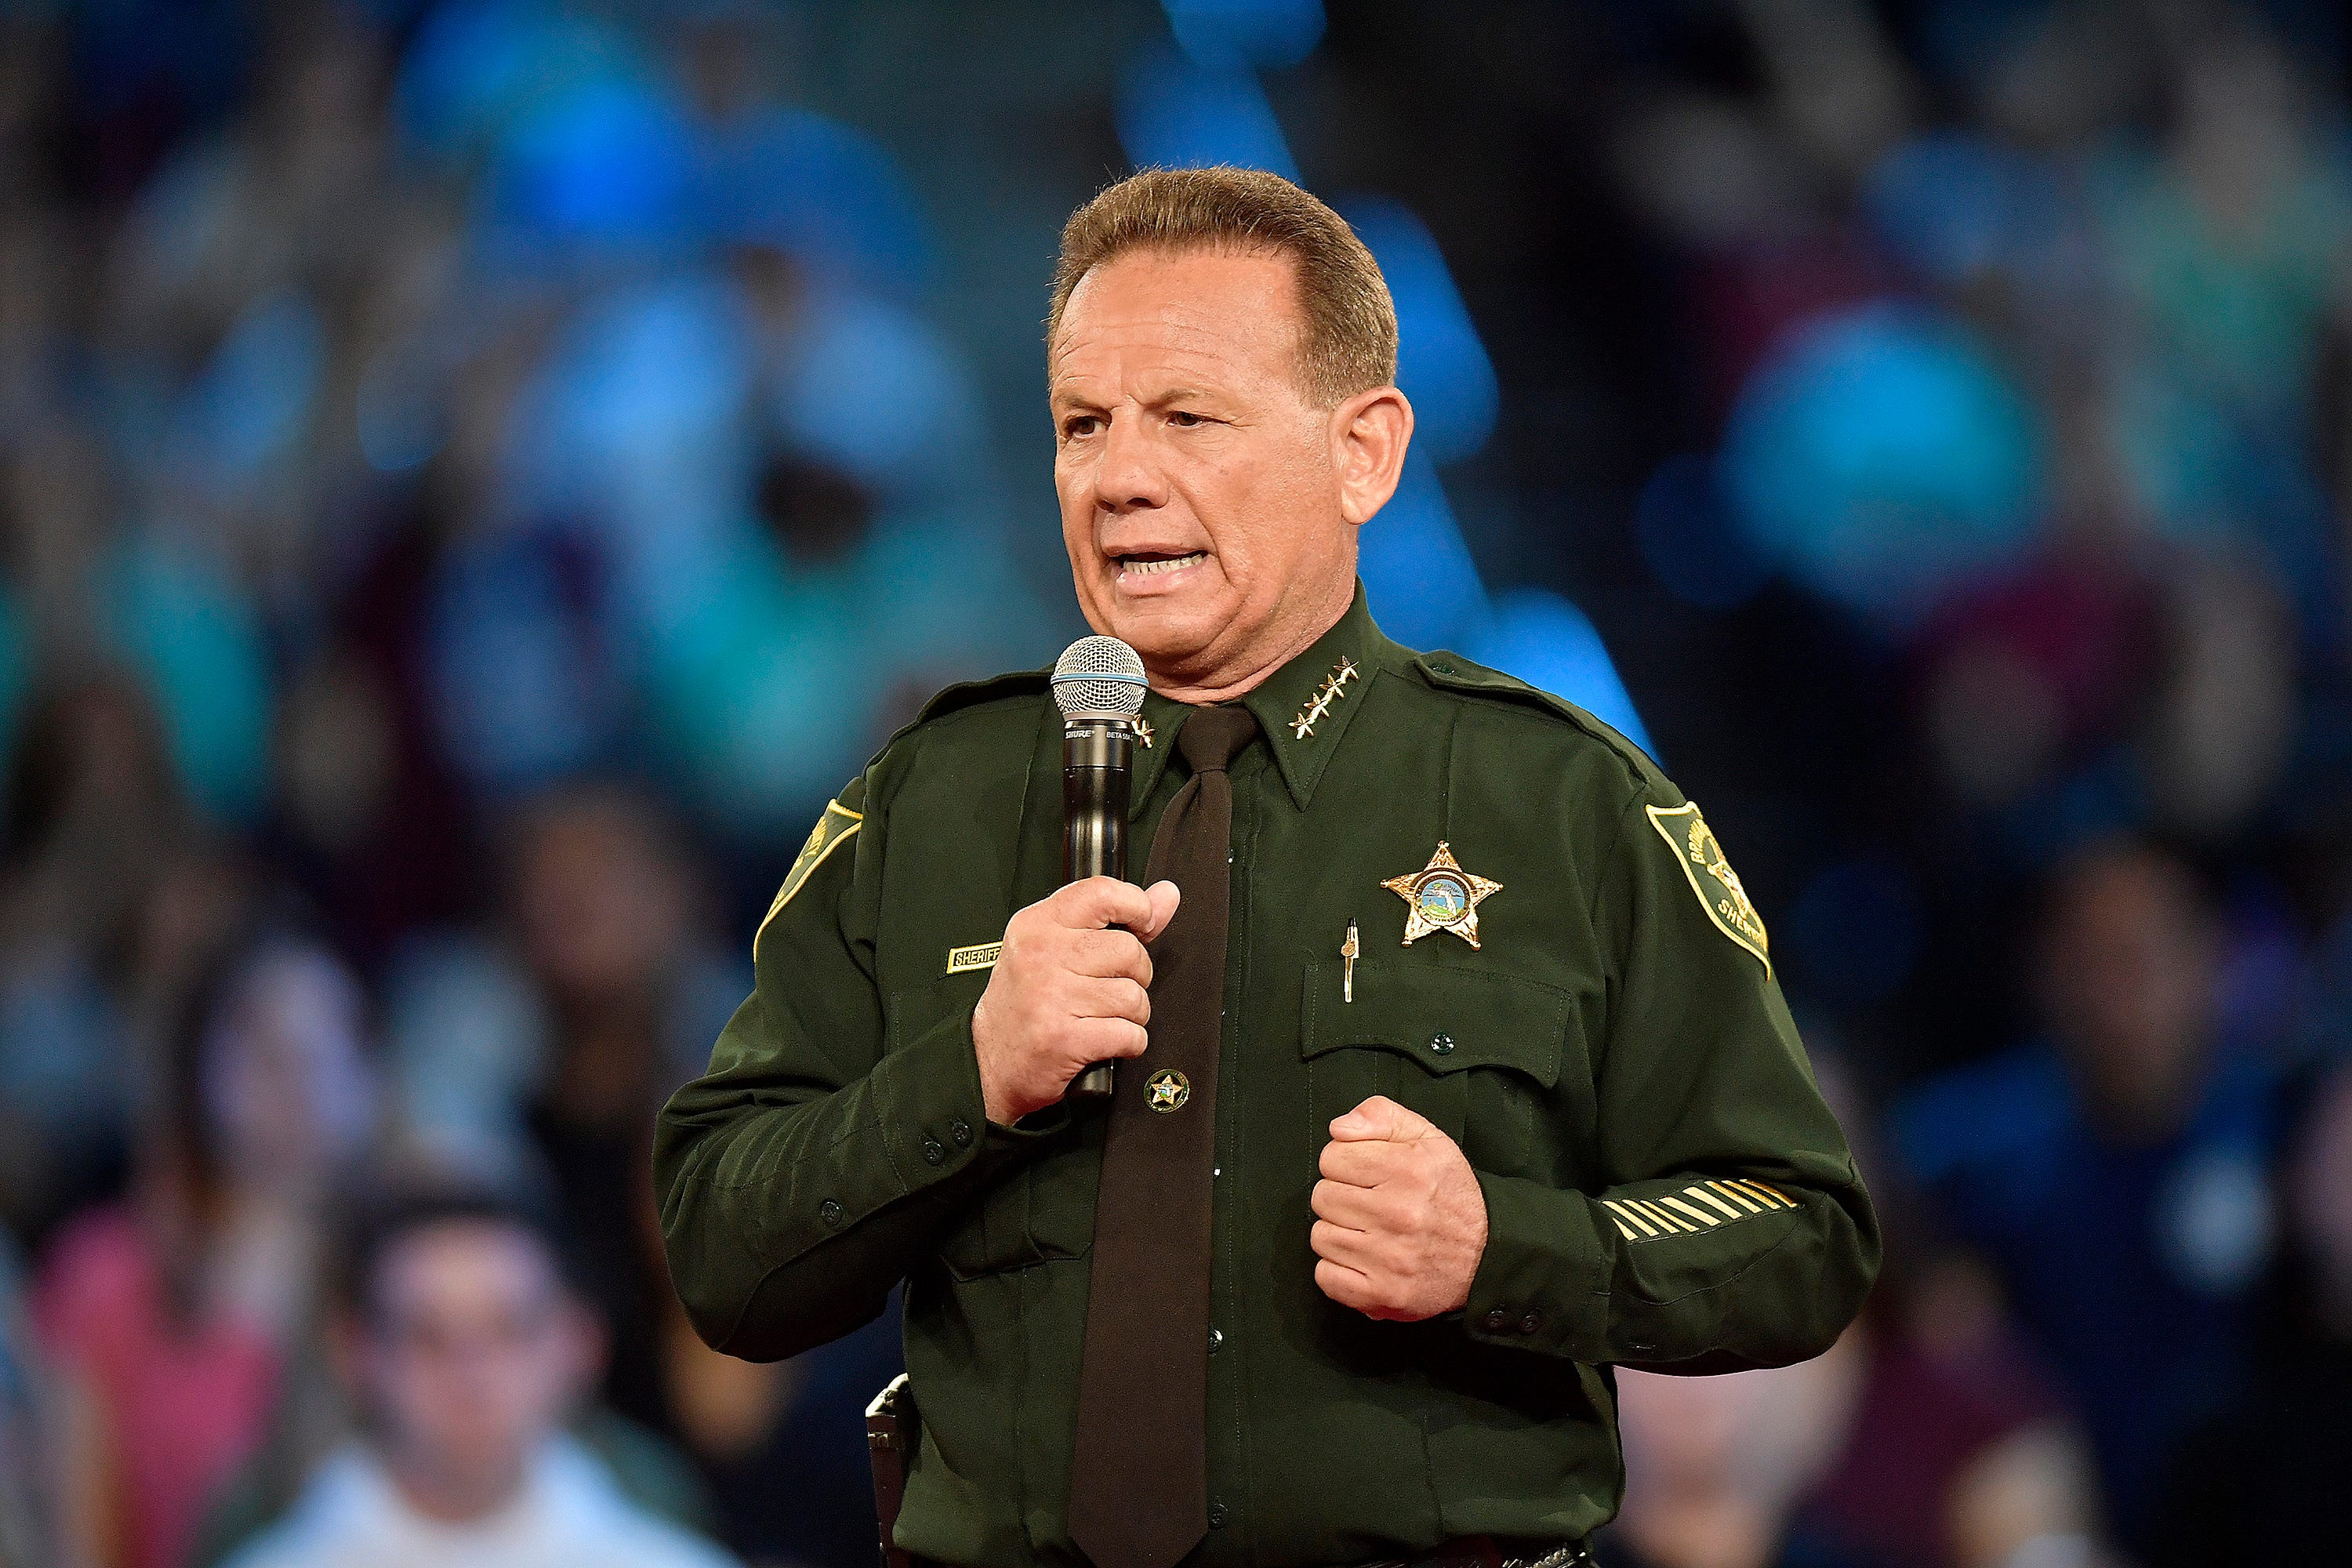 Broward County Sheriff Scott Israel speaks before a CNN town hall broadcast, on Feb. 21, 2018, at the BB&T Center, in Sunrise, Fla.